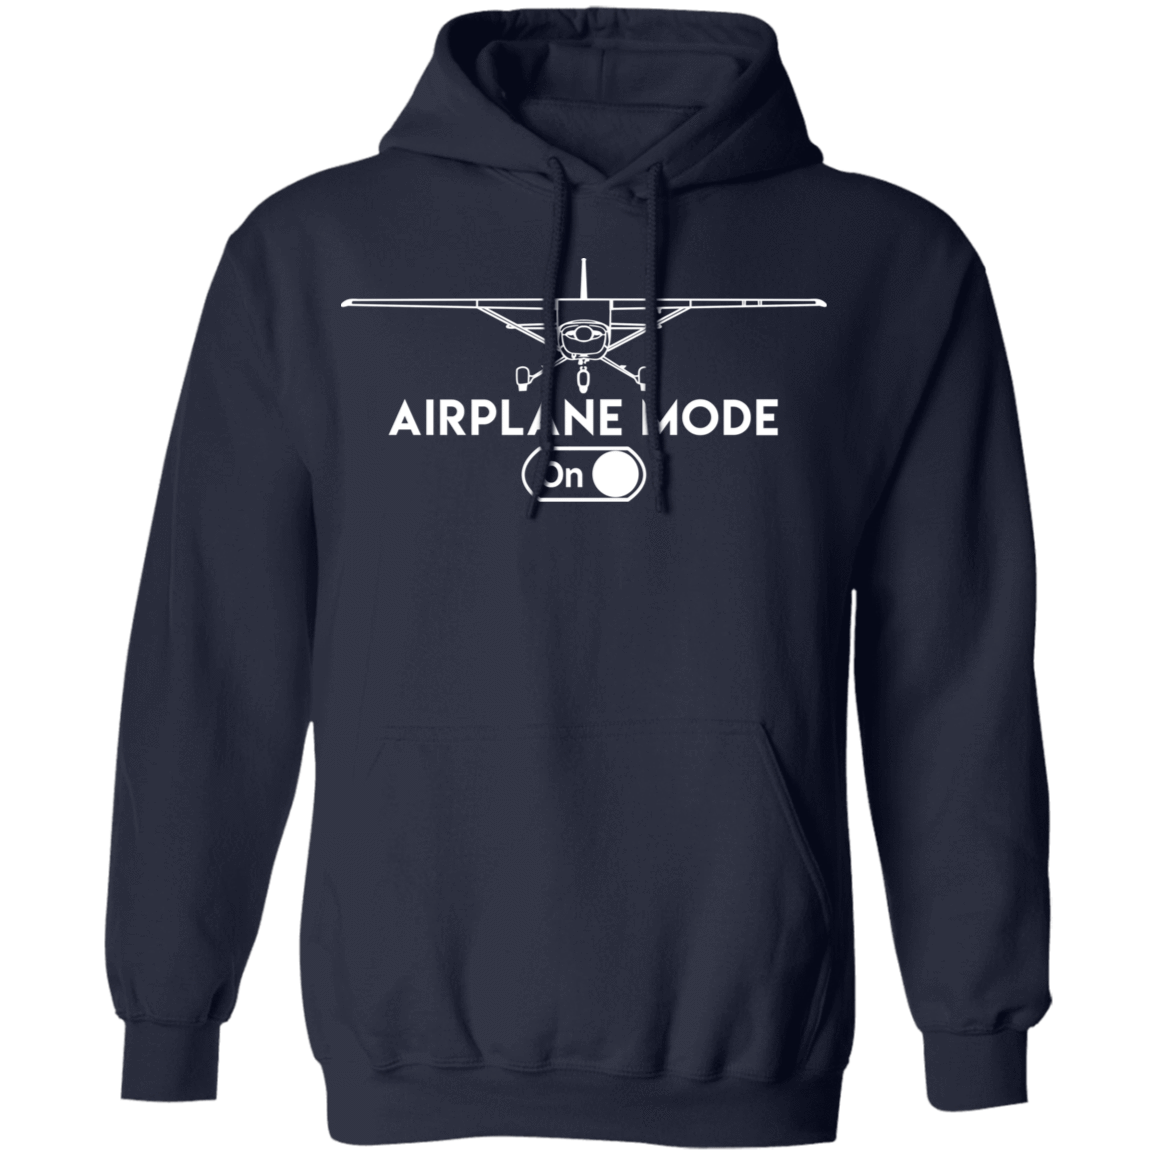 Airplane Mode On T-Shirts, Hoodies 541-4742-82972773-23135 - Tee Ript